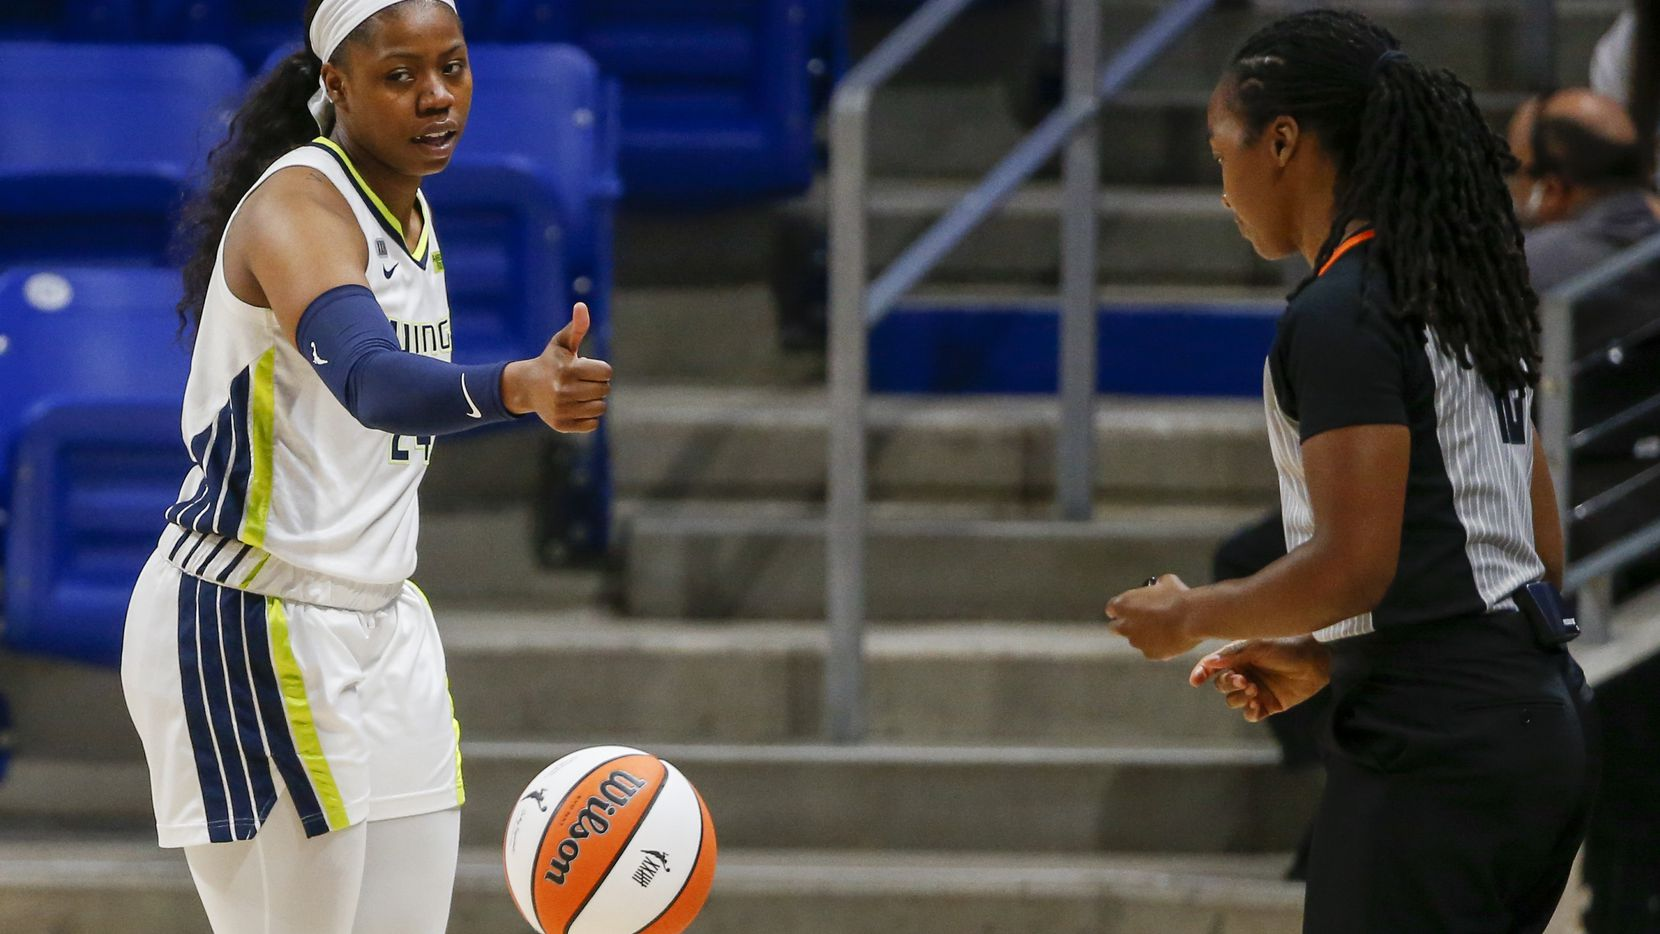 Dallas Wings guard Arike Ogunbowale (24) motions to the referee after a called foul during the first quarter against the Washington Mystics at College Park Center on Saturday, June 26, 2021, in Arlington. (Elias Valverde II/The Dallas Morning News)